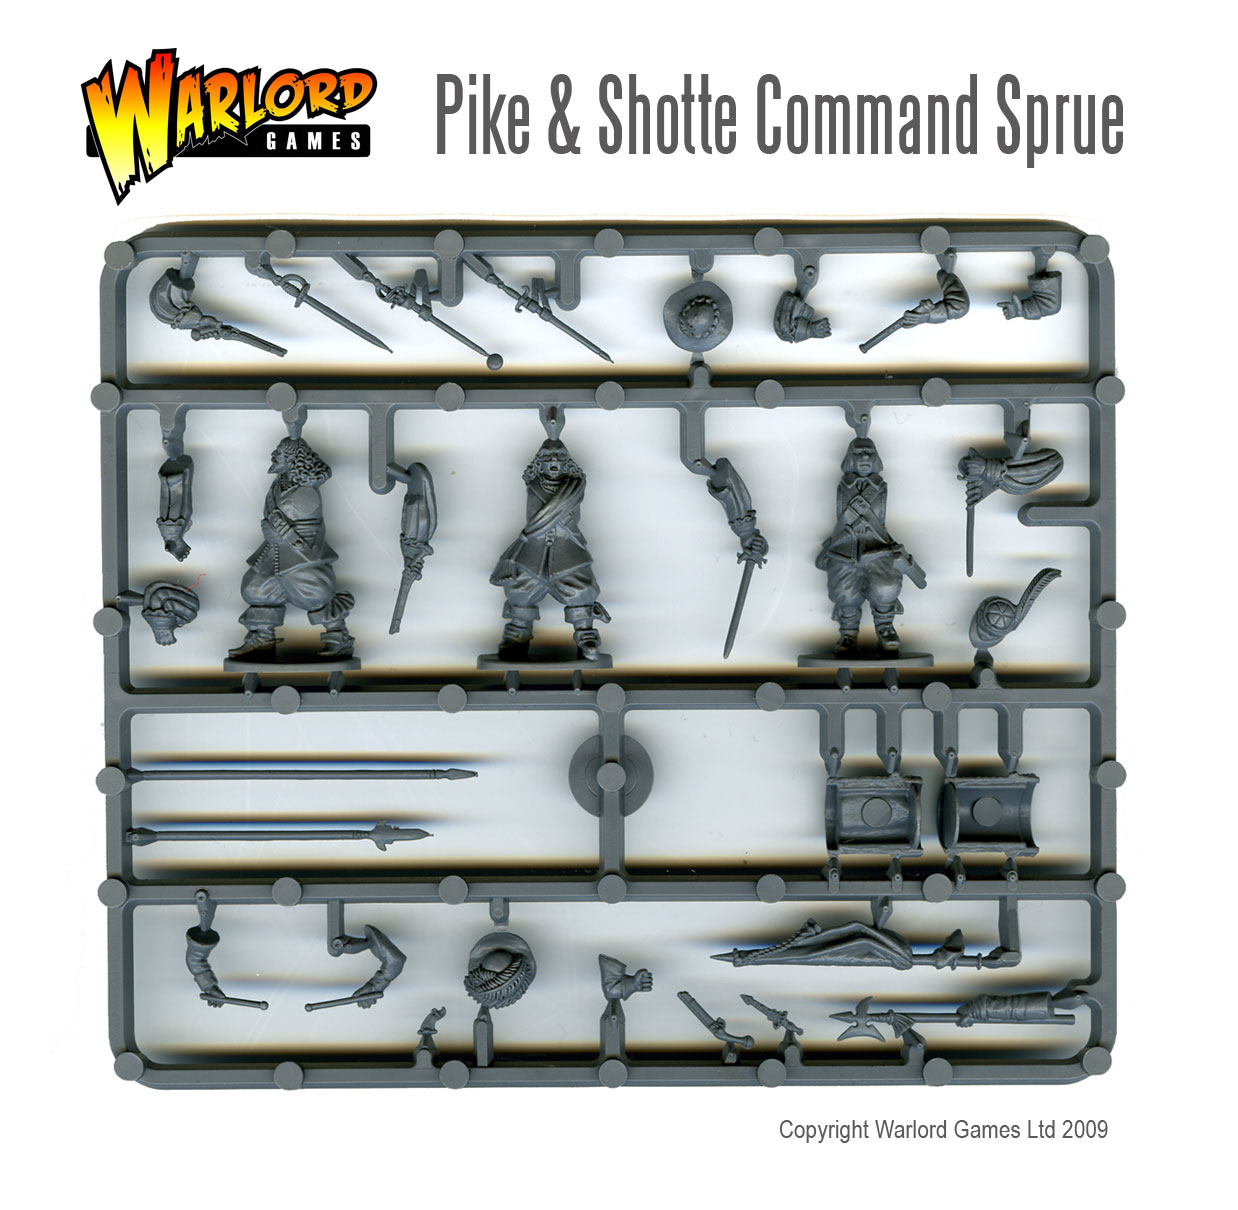 Pike & Shotte Infantry Command Sprue Front